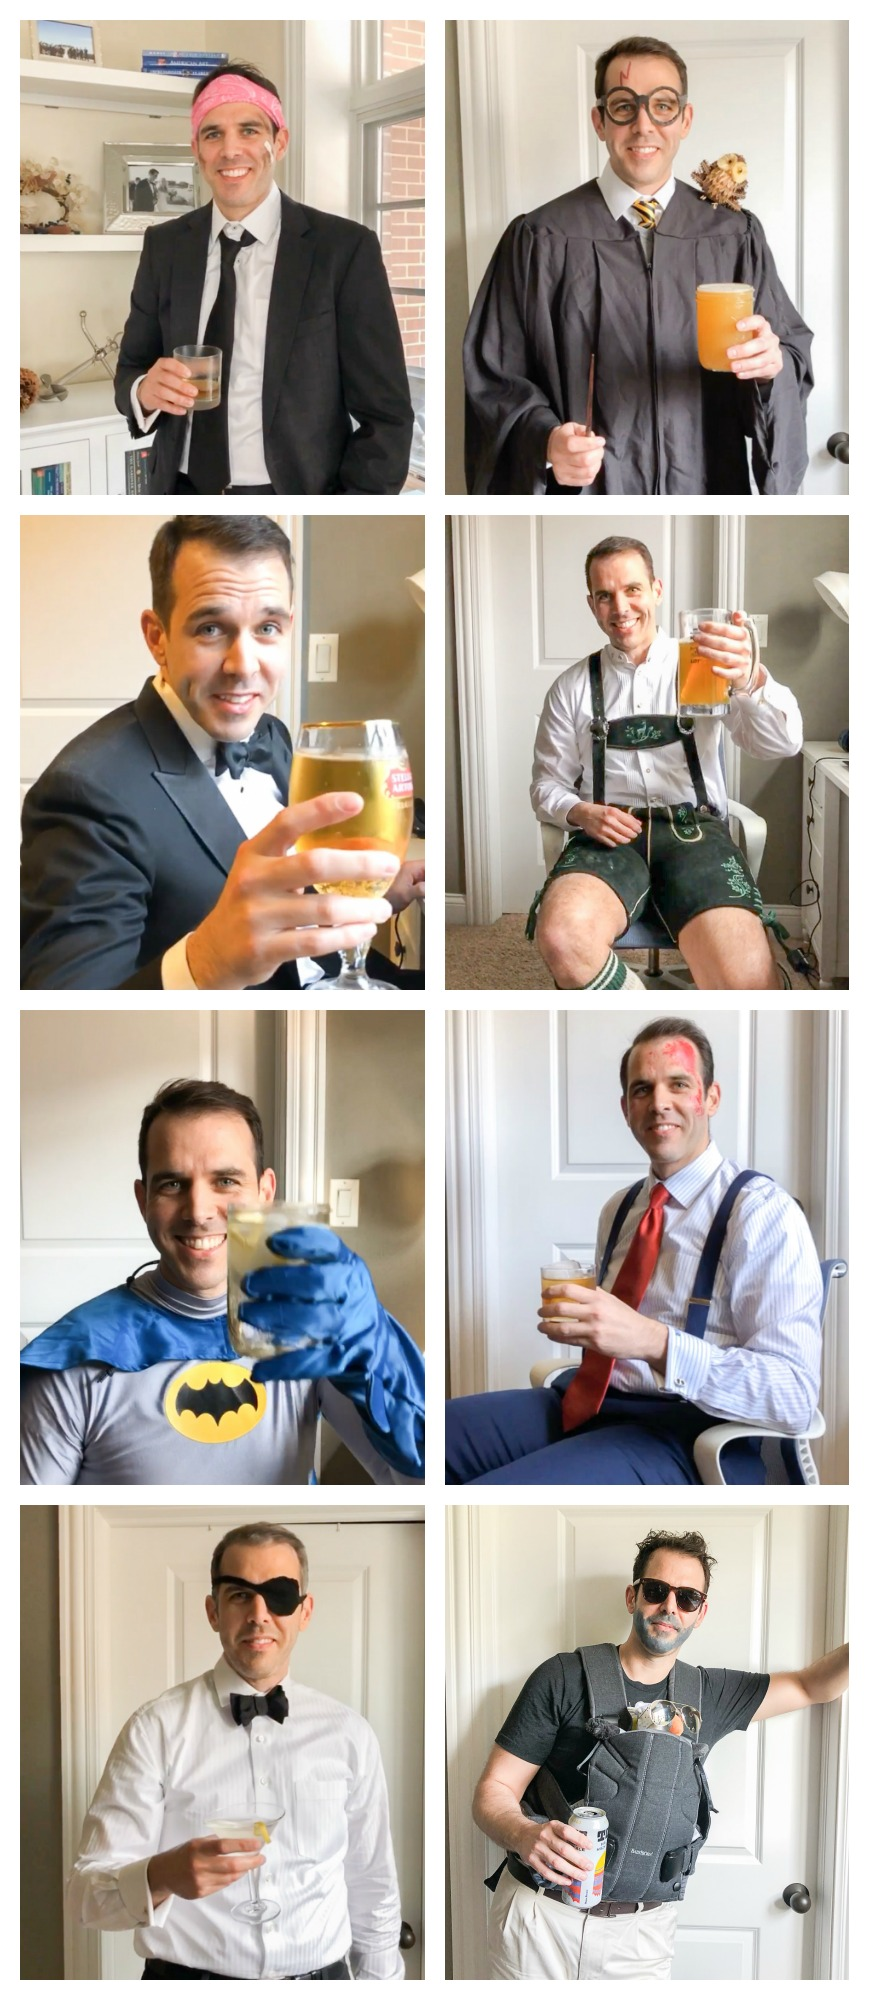 Fun costume ideas for men: Mayhem, Harry Potter, Lederhosen, Batman, Patrick Bateman, Bond Villain, and Alan from The Hangover.